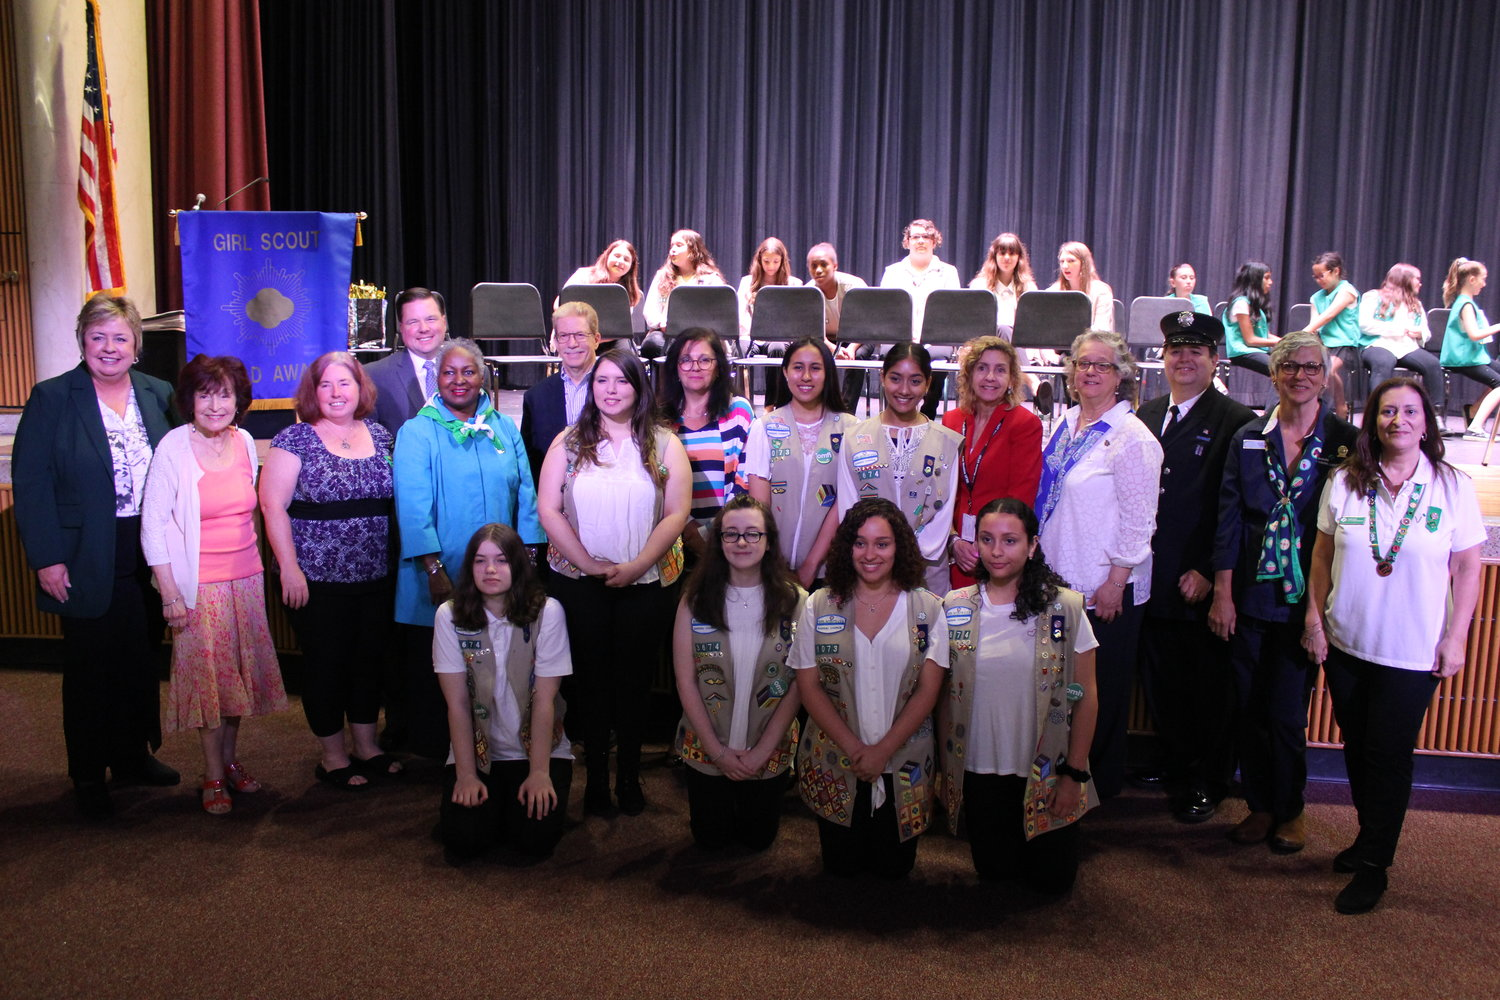 East Meadow Girl Scouts were recognized with the Gold Award, the most prestigious honor in the organization, at a ceremony at W.T. Clarke High School on June 6.